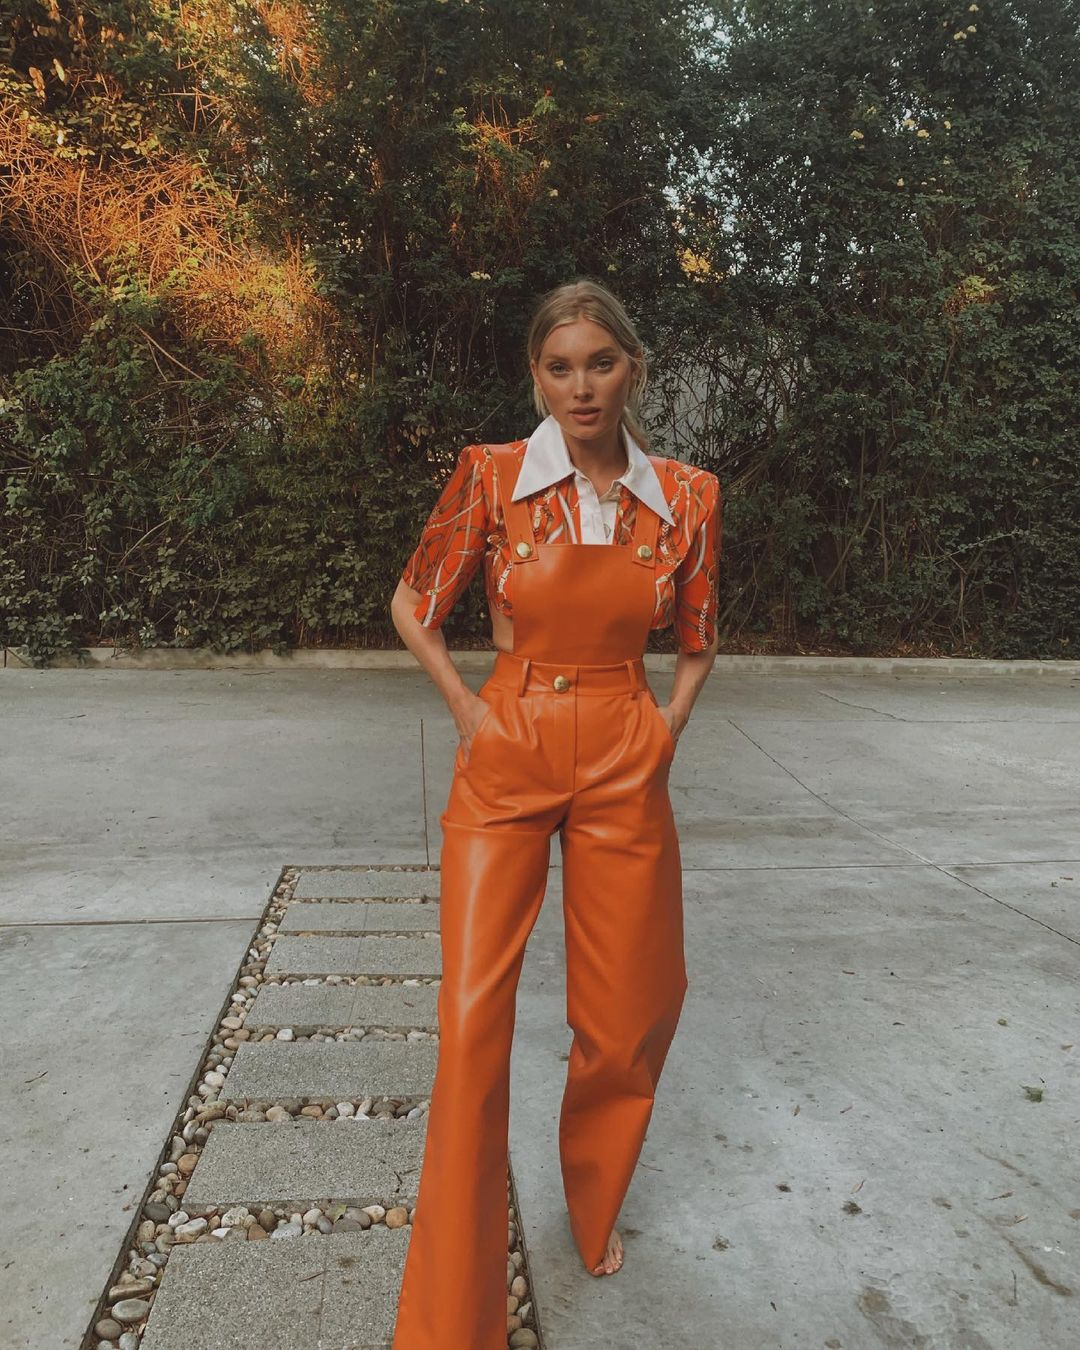 Elsa Hosk wearing a flare orange jumpsuit with a leather fabric, side pockets, a square neck and straps